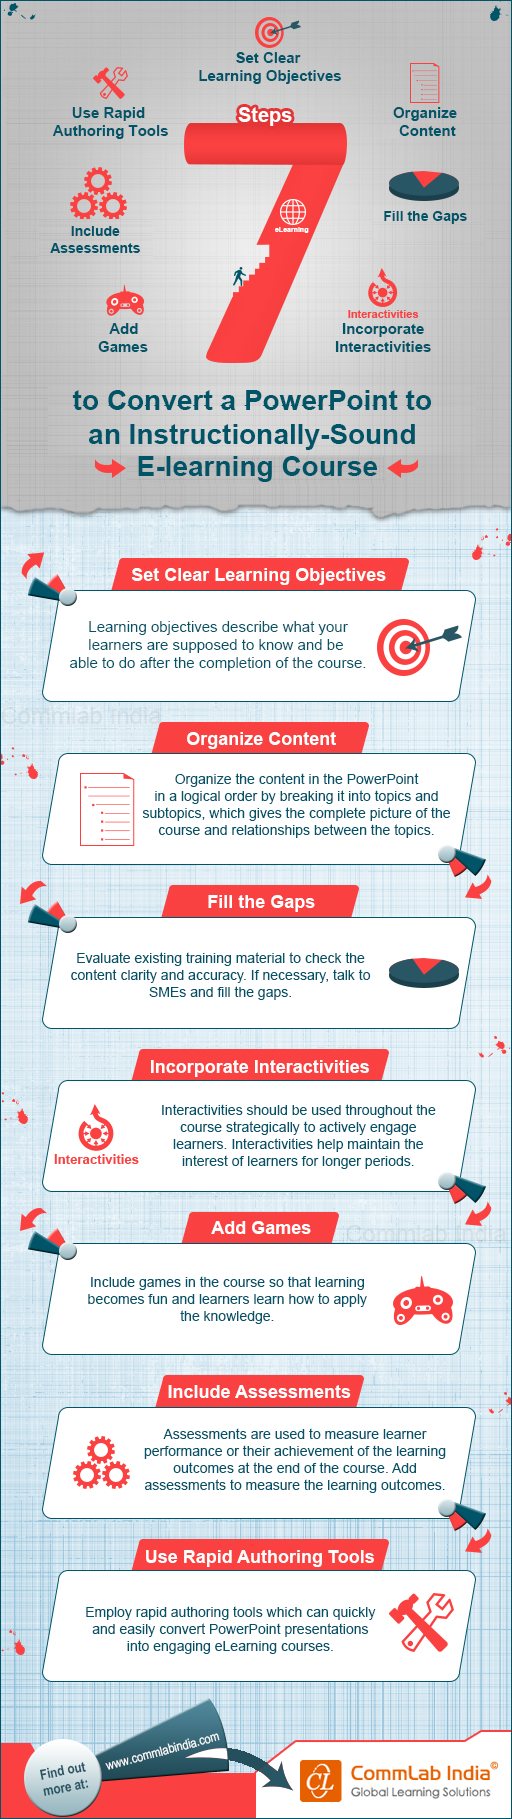 7 Steps to Convert a PowerPoint to an Instructionally-Sound E-learning Course [Infographic]